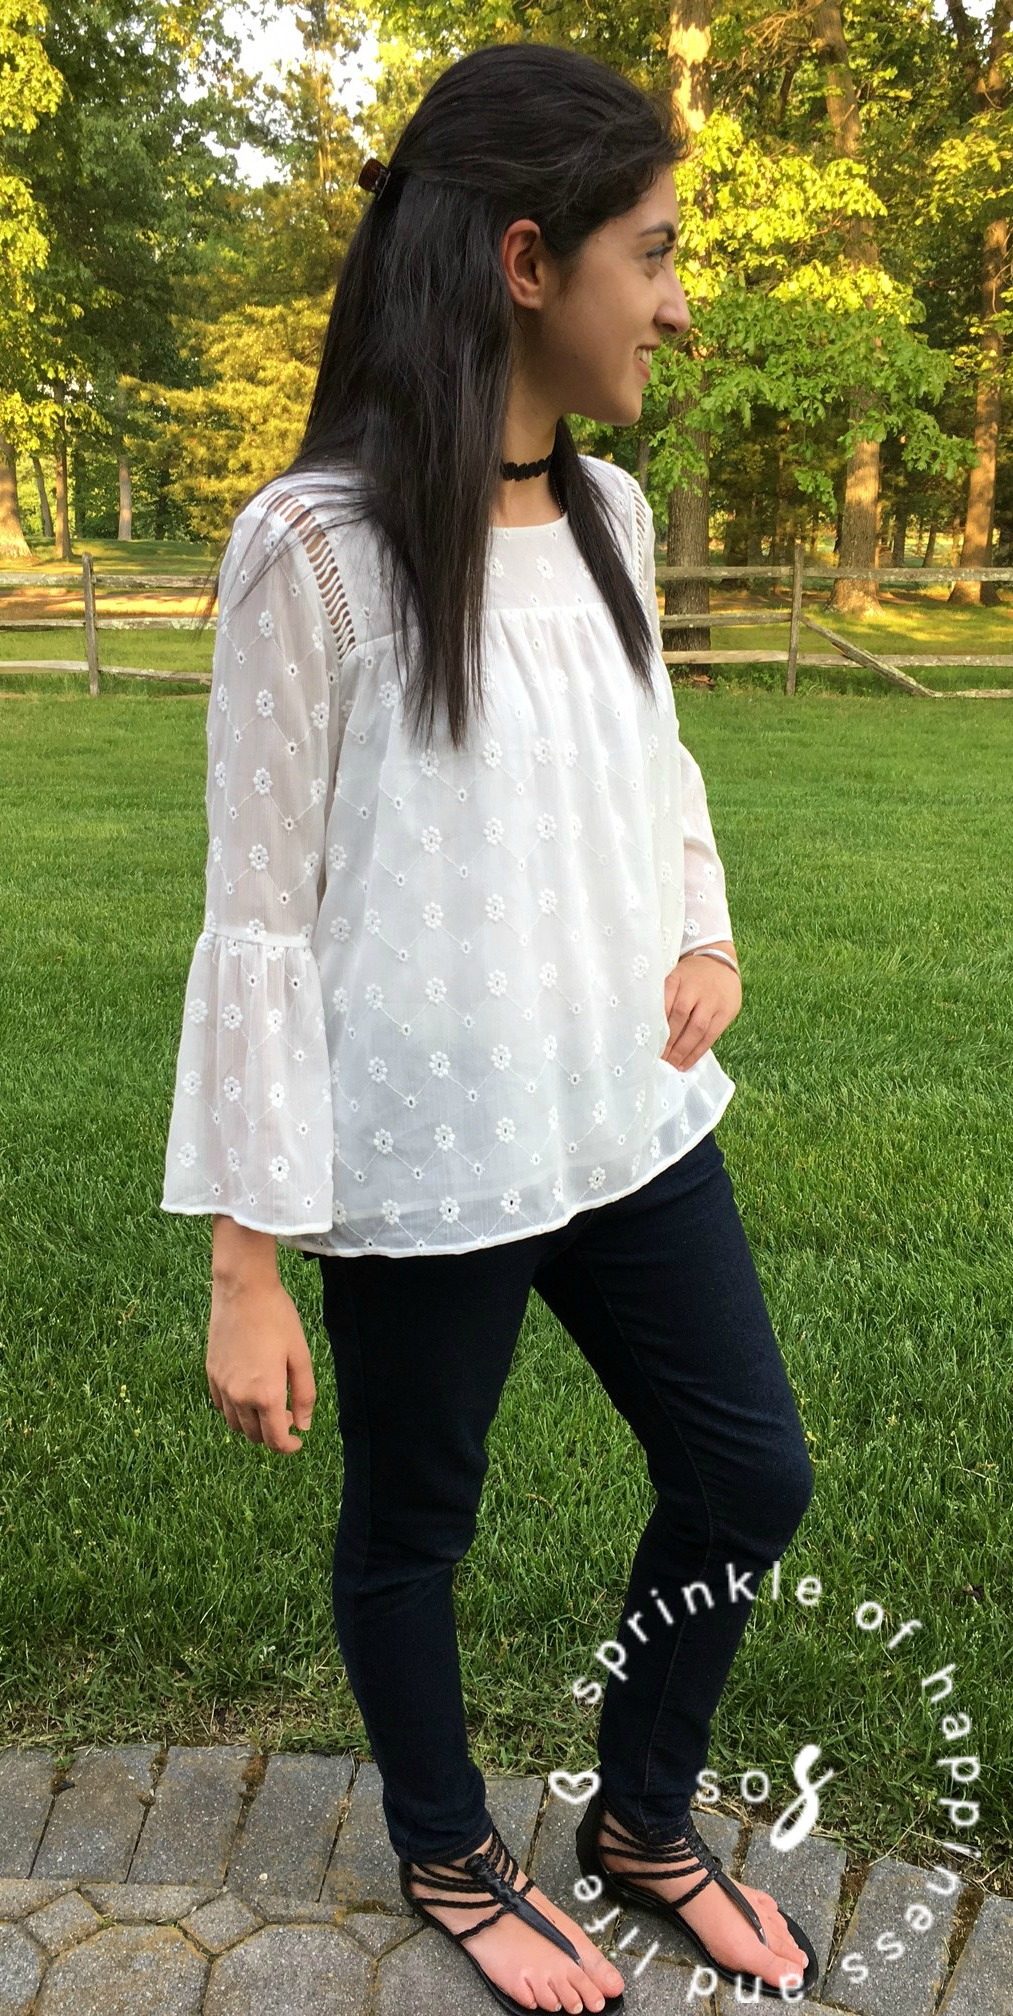 White Lace & Bell Sleeves!